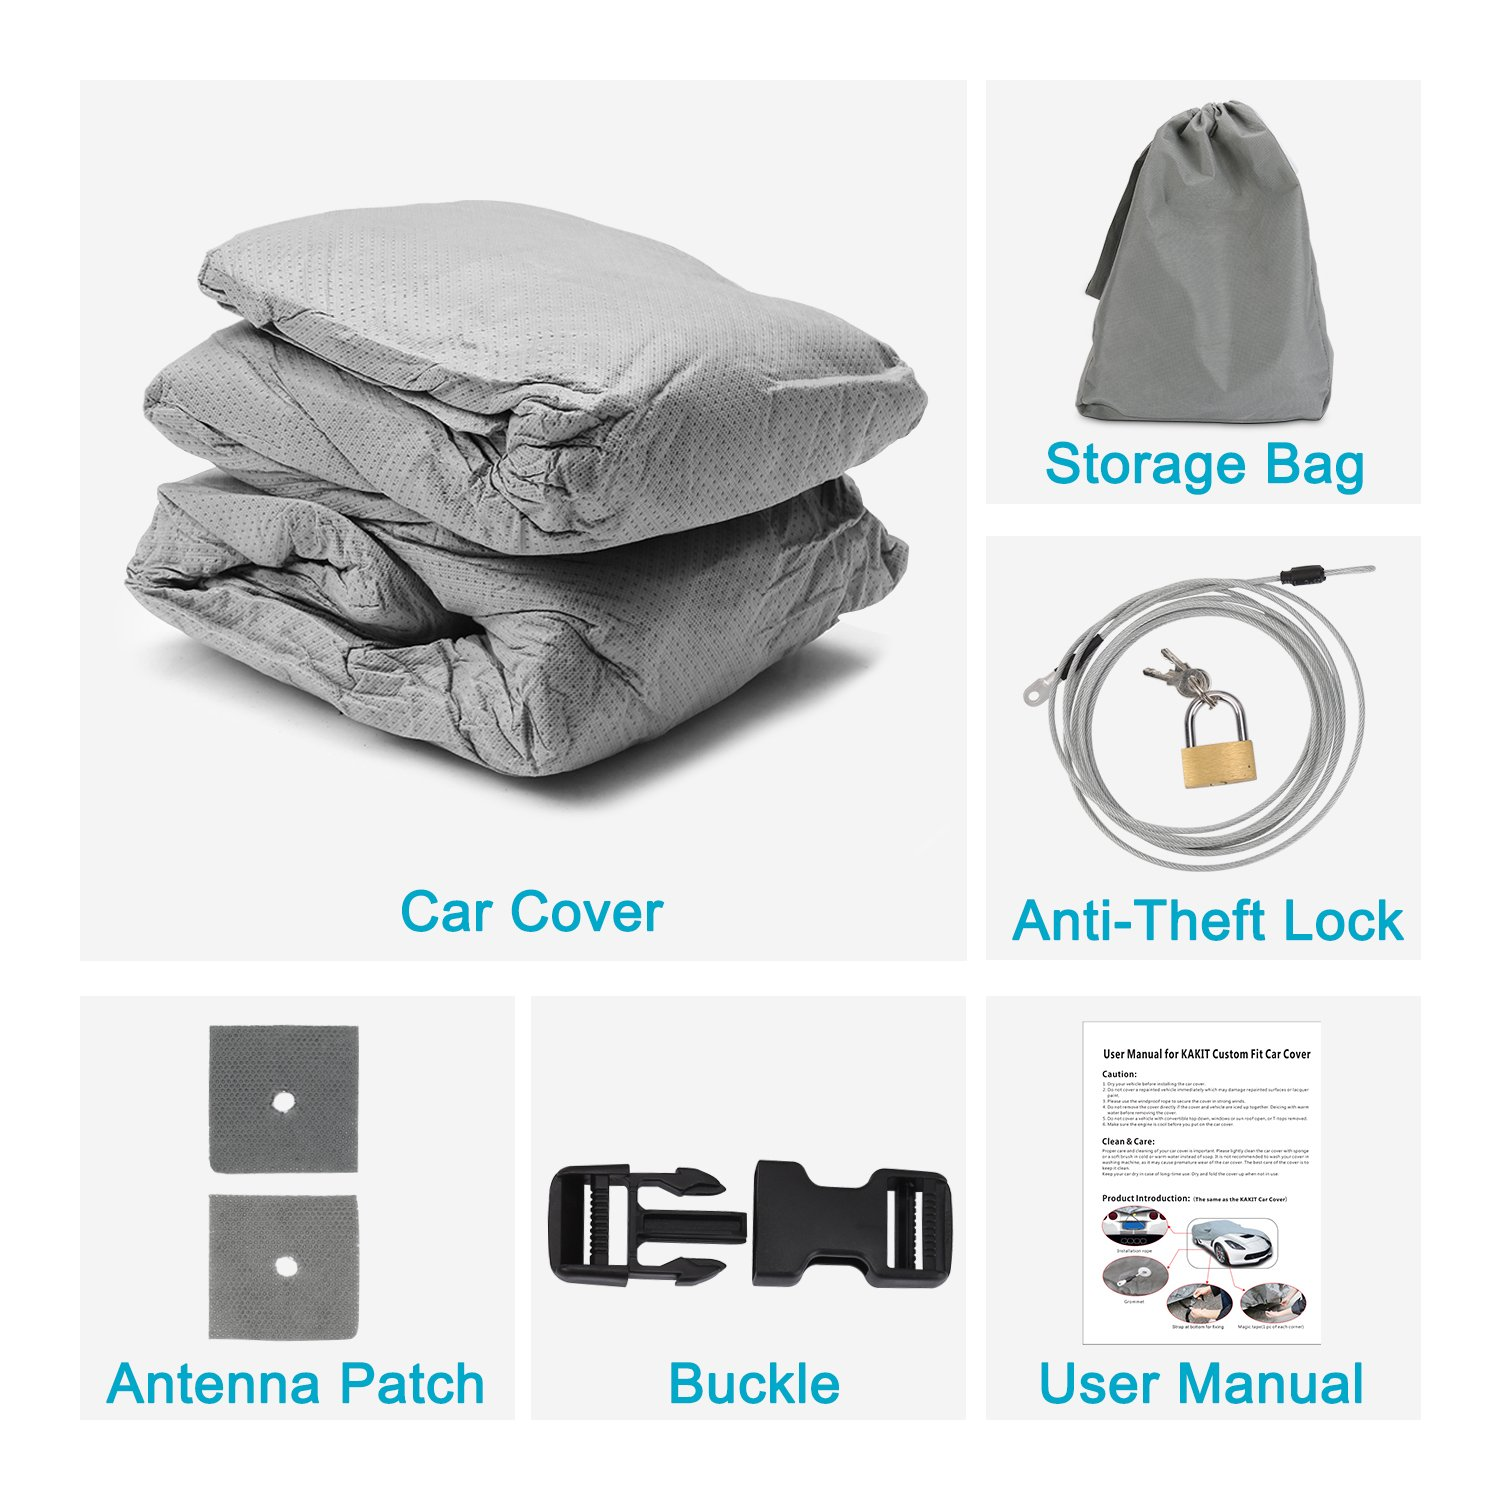 Free Windproof Ribbon /& Anti-Theft Lock KAKIT 6 Layers C6 Car Cover for Chevy Corvette C6 2005-2013 Dustproof Scratch Proof C6 Car Cover All Weather Waterproof